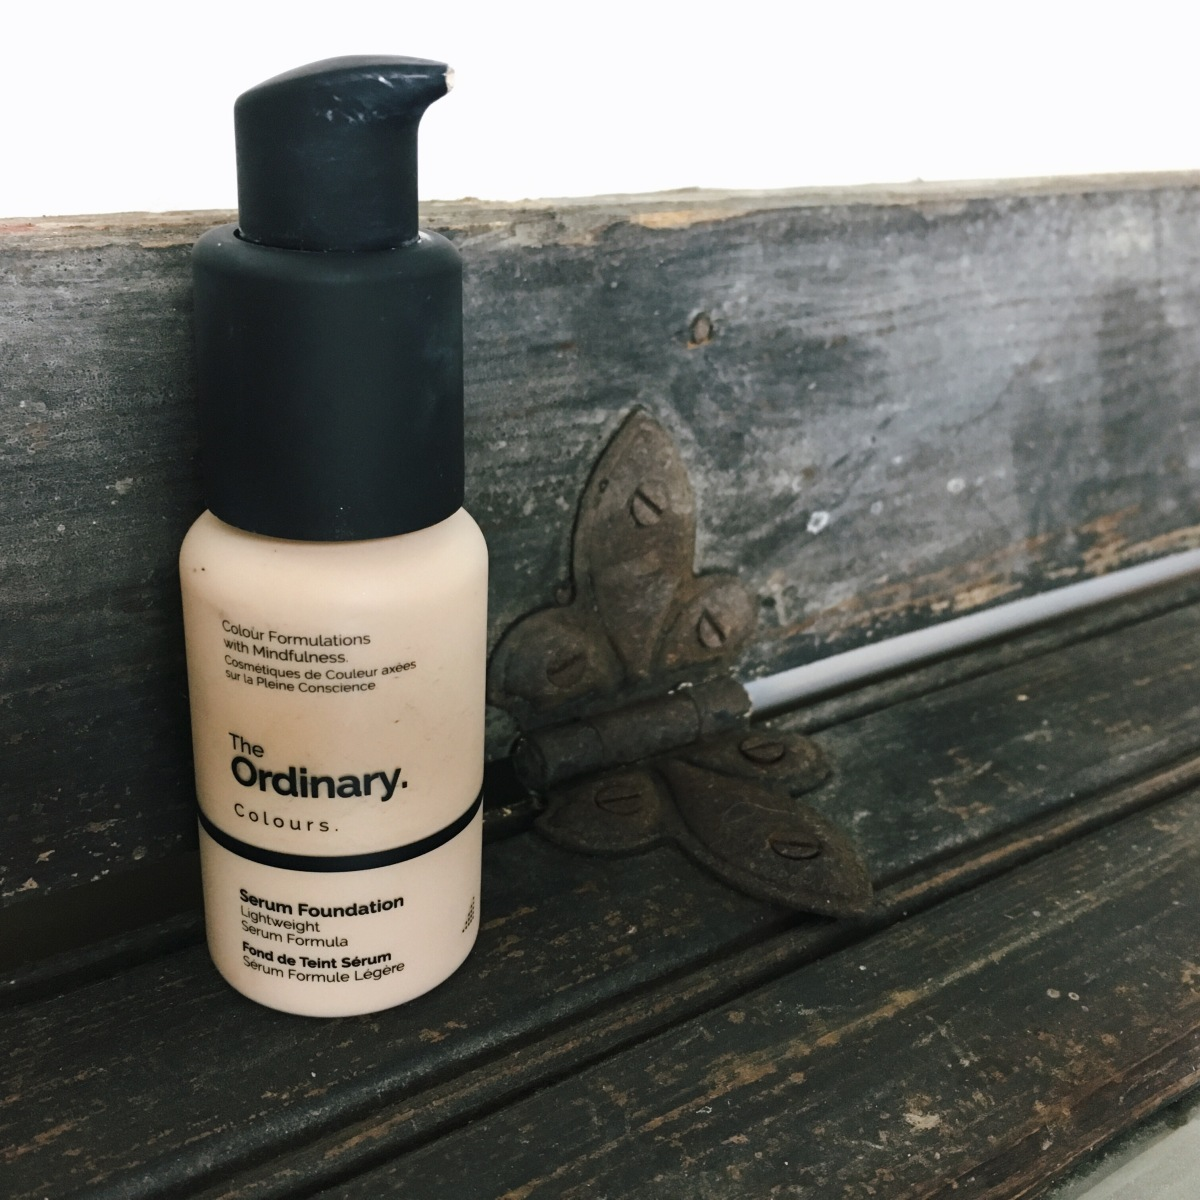 The Ordinary – Serum Foundation – Review